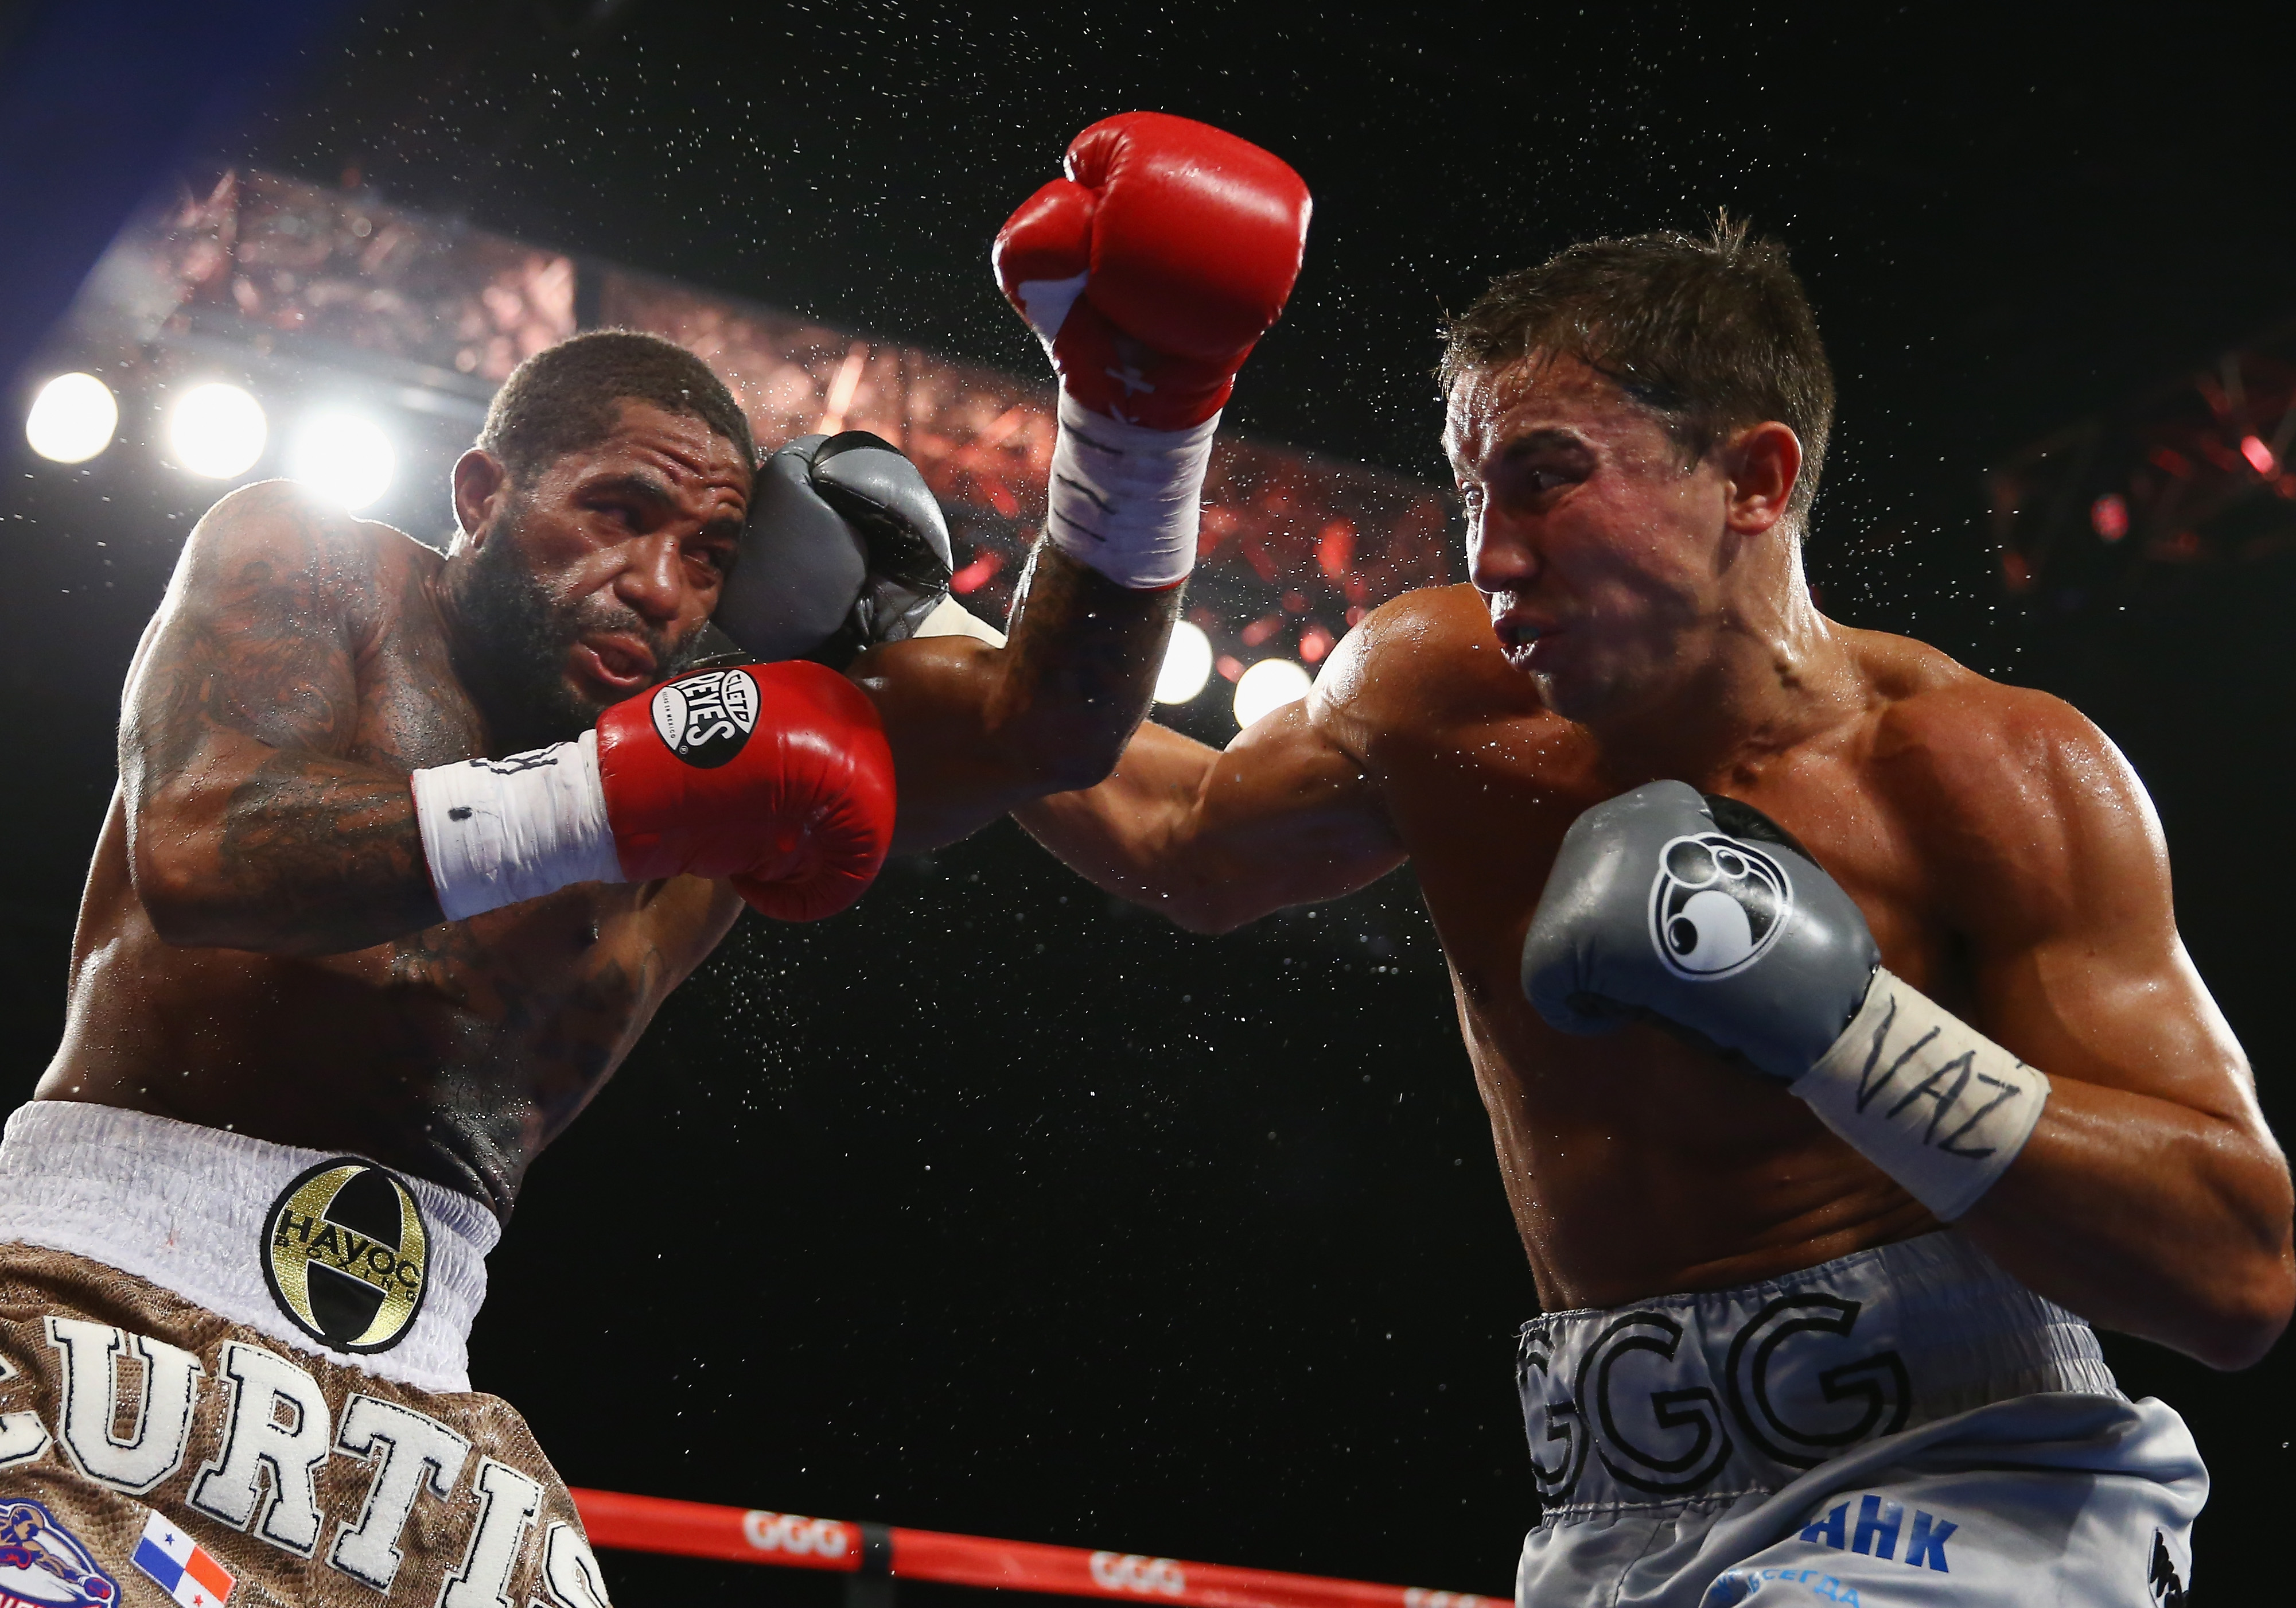 Gennady Golovkin punches Curtis Stevens during their WBA Middleweight Title fight at The Theater at Madison Square Garden on November 2, 2013 in New York City. (Getty)